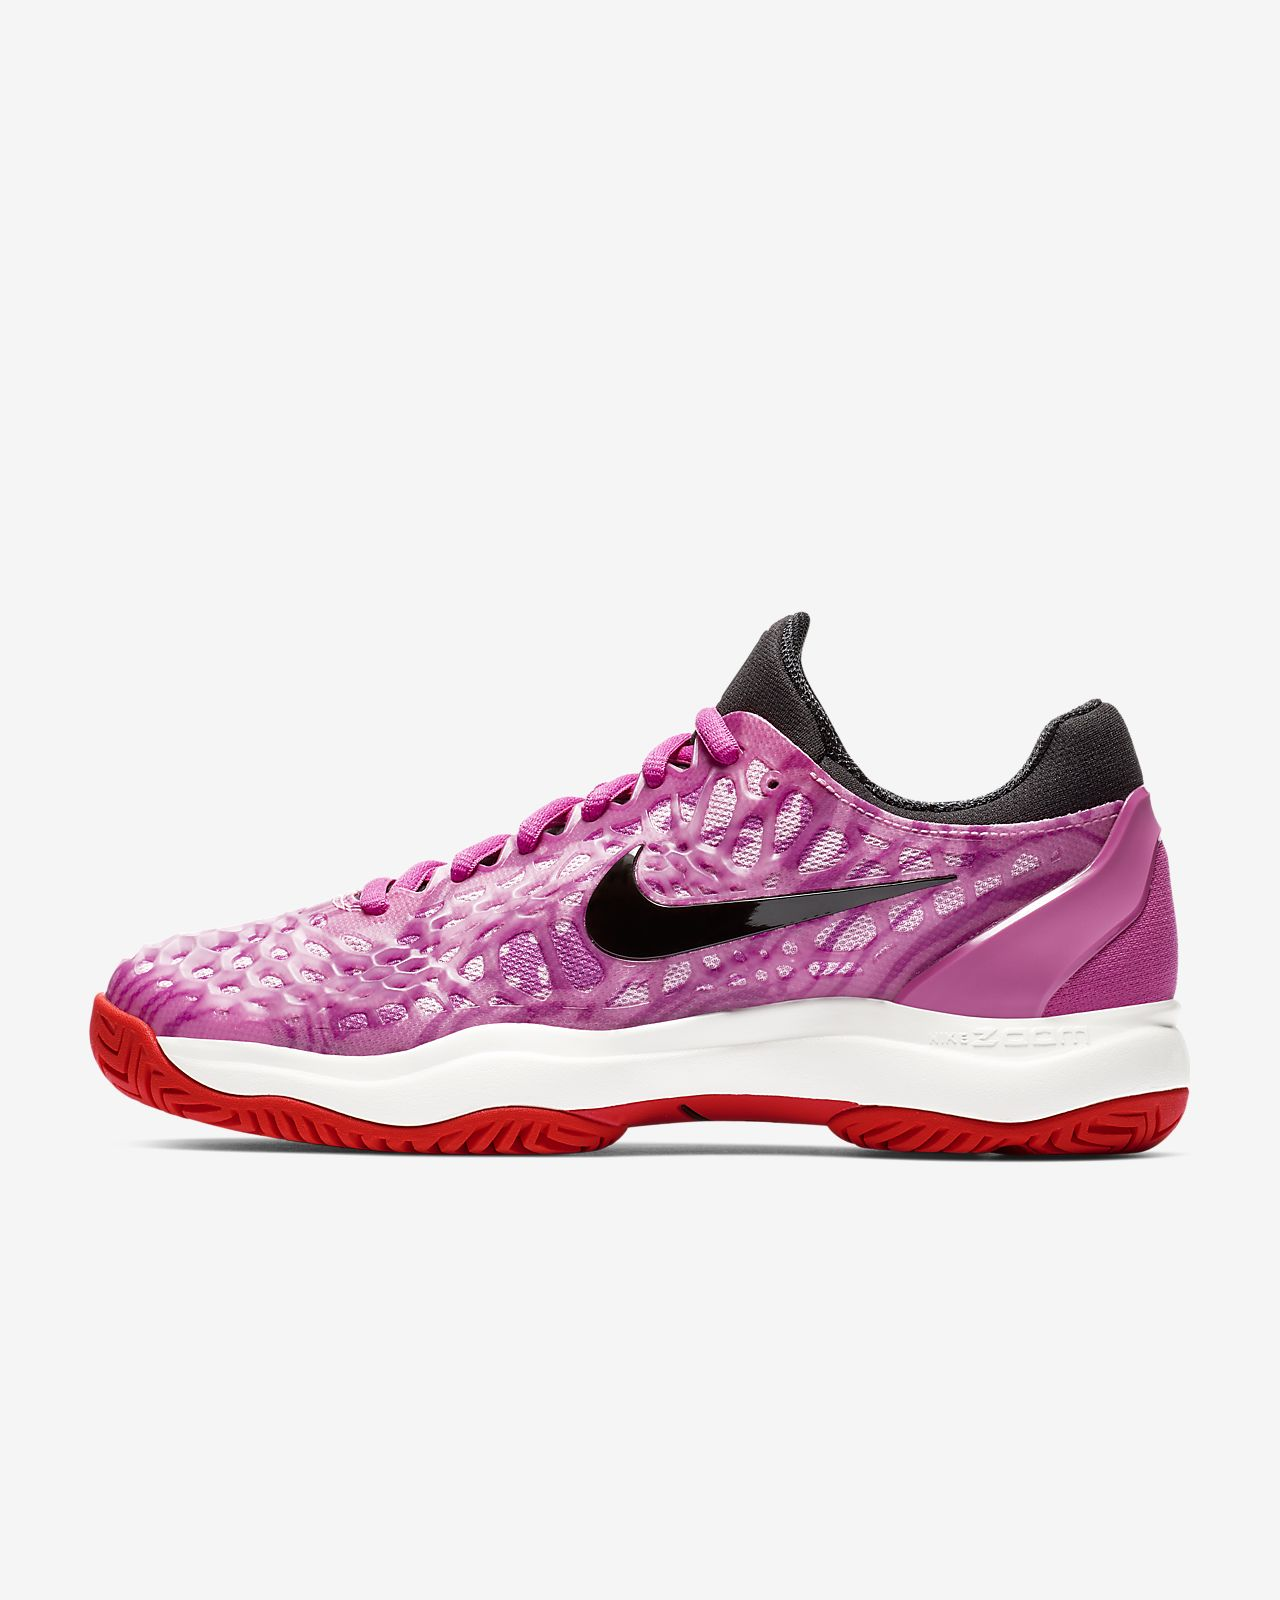 NikeCourt Zoom Cage 3 Women's Hard Court Tennis Shoe